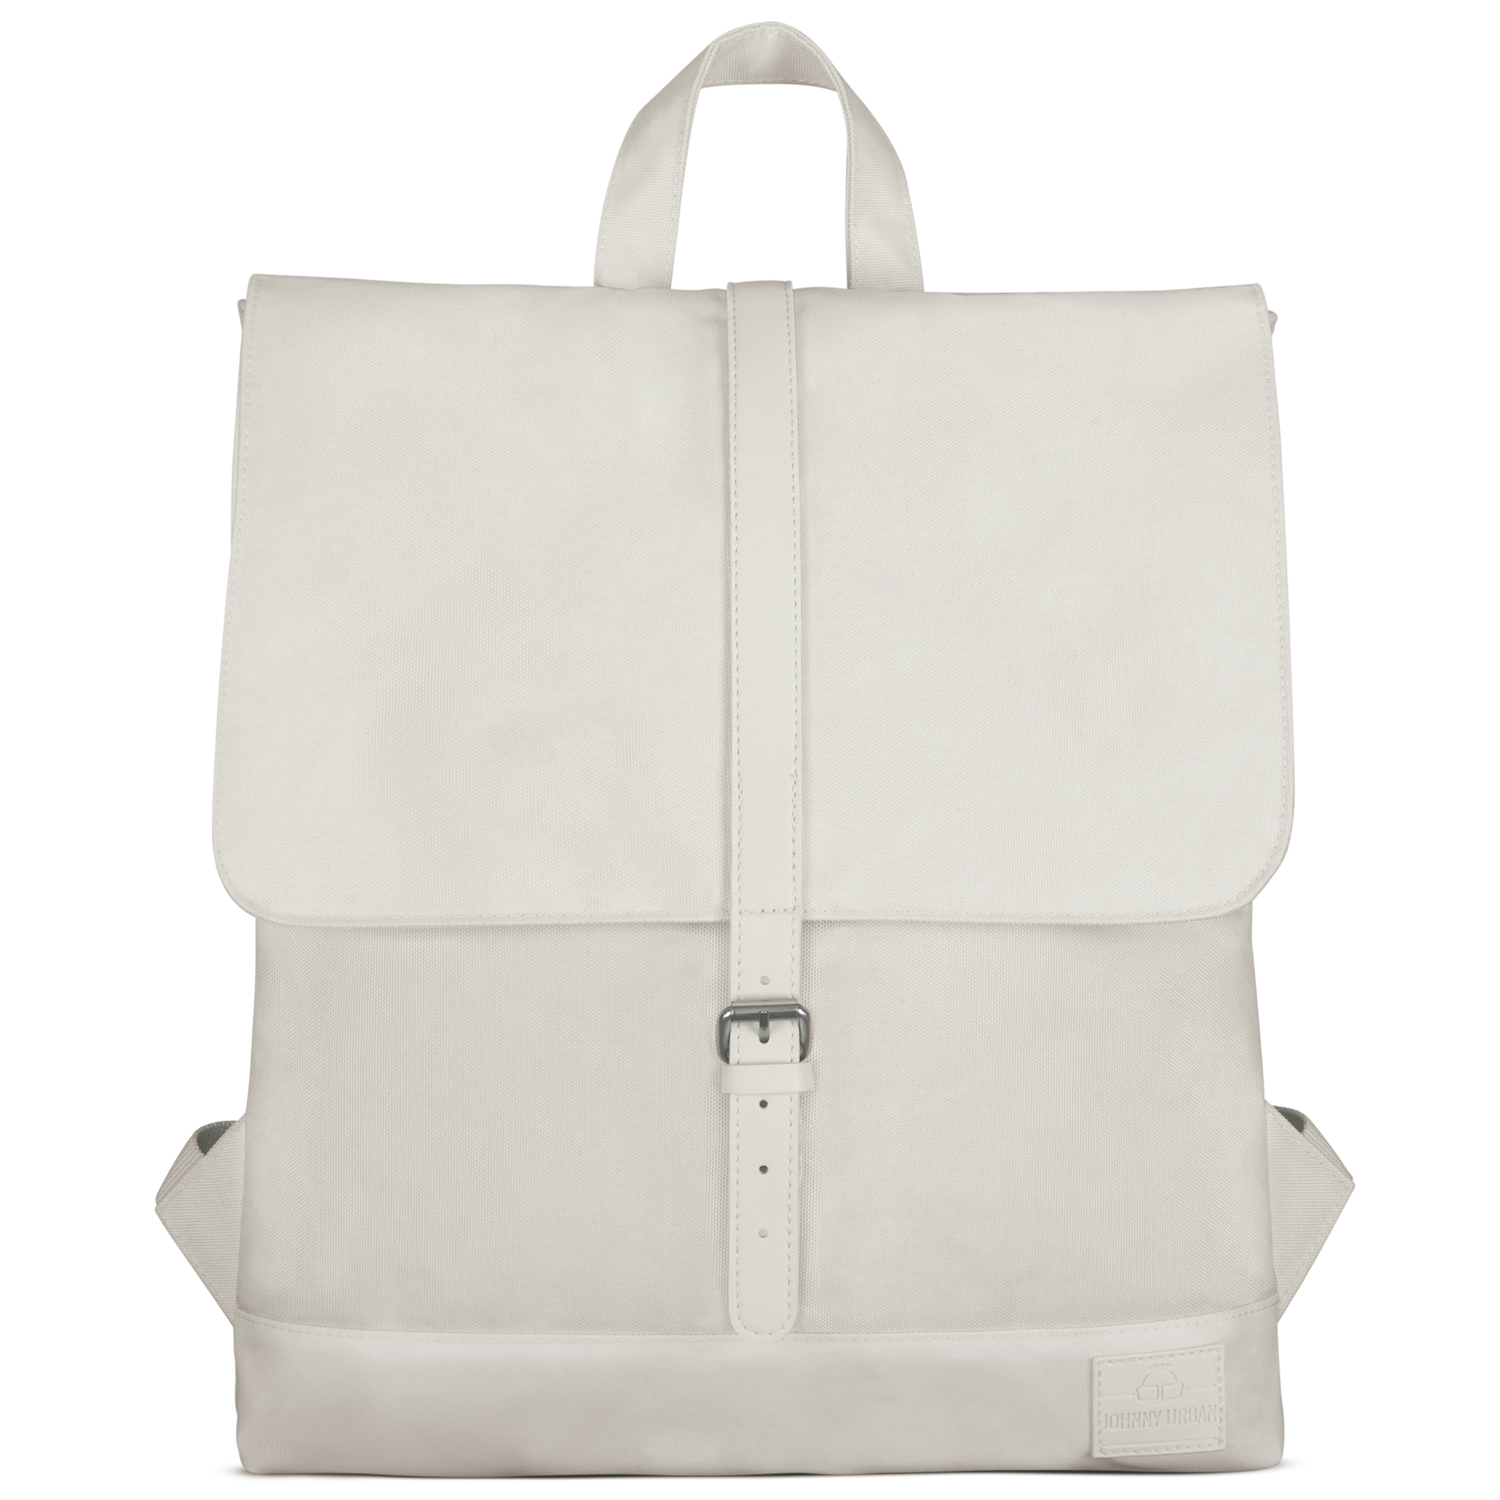 Rucksack - Mia - cream - Johnny Urban